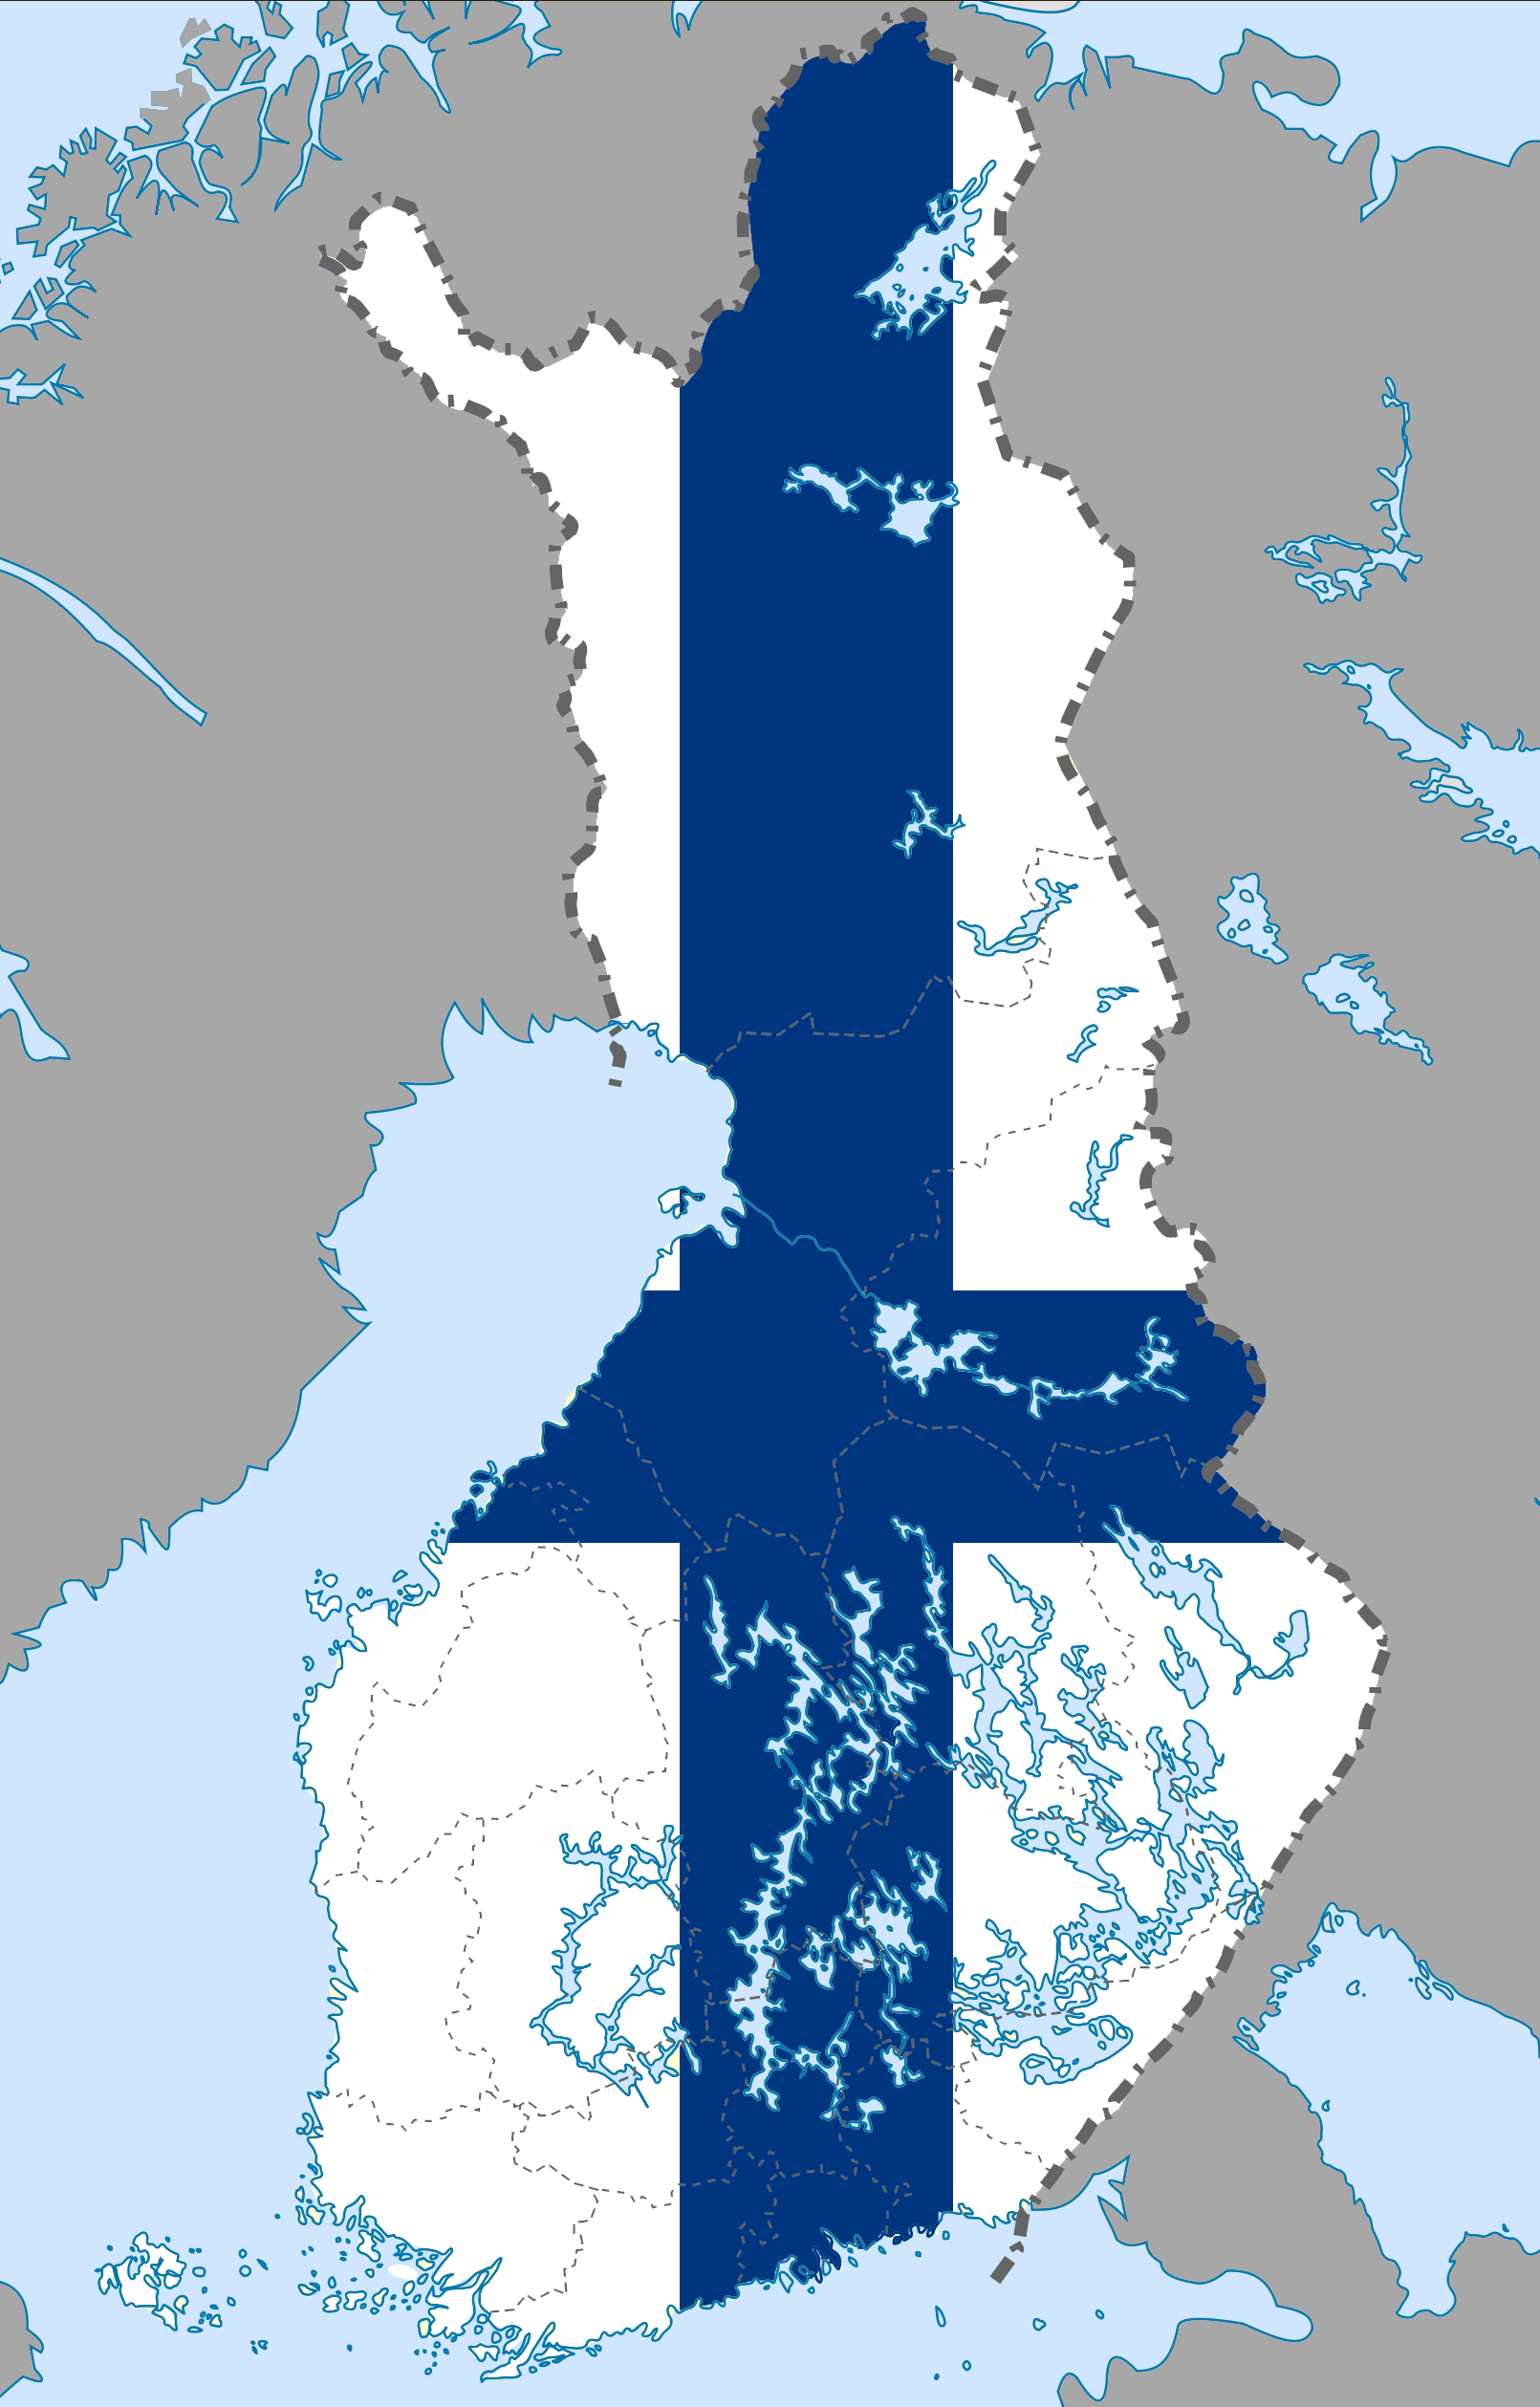 File:Finland flag map.png - Wikimedia Commons